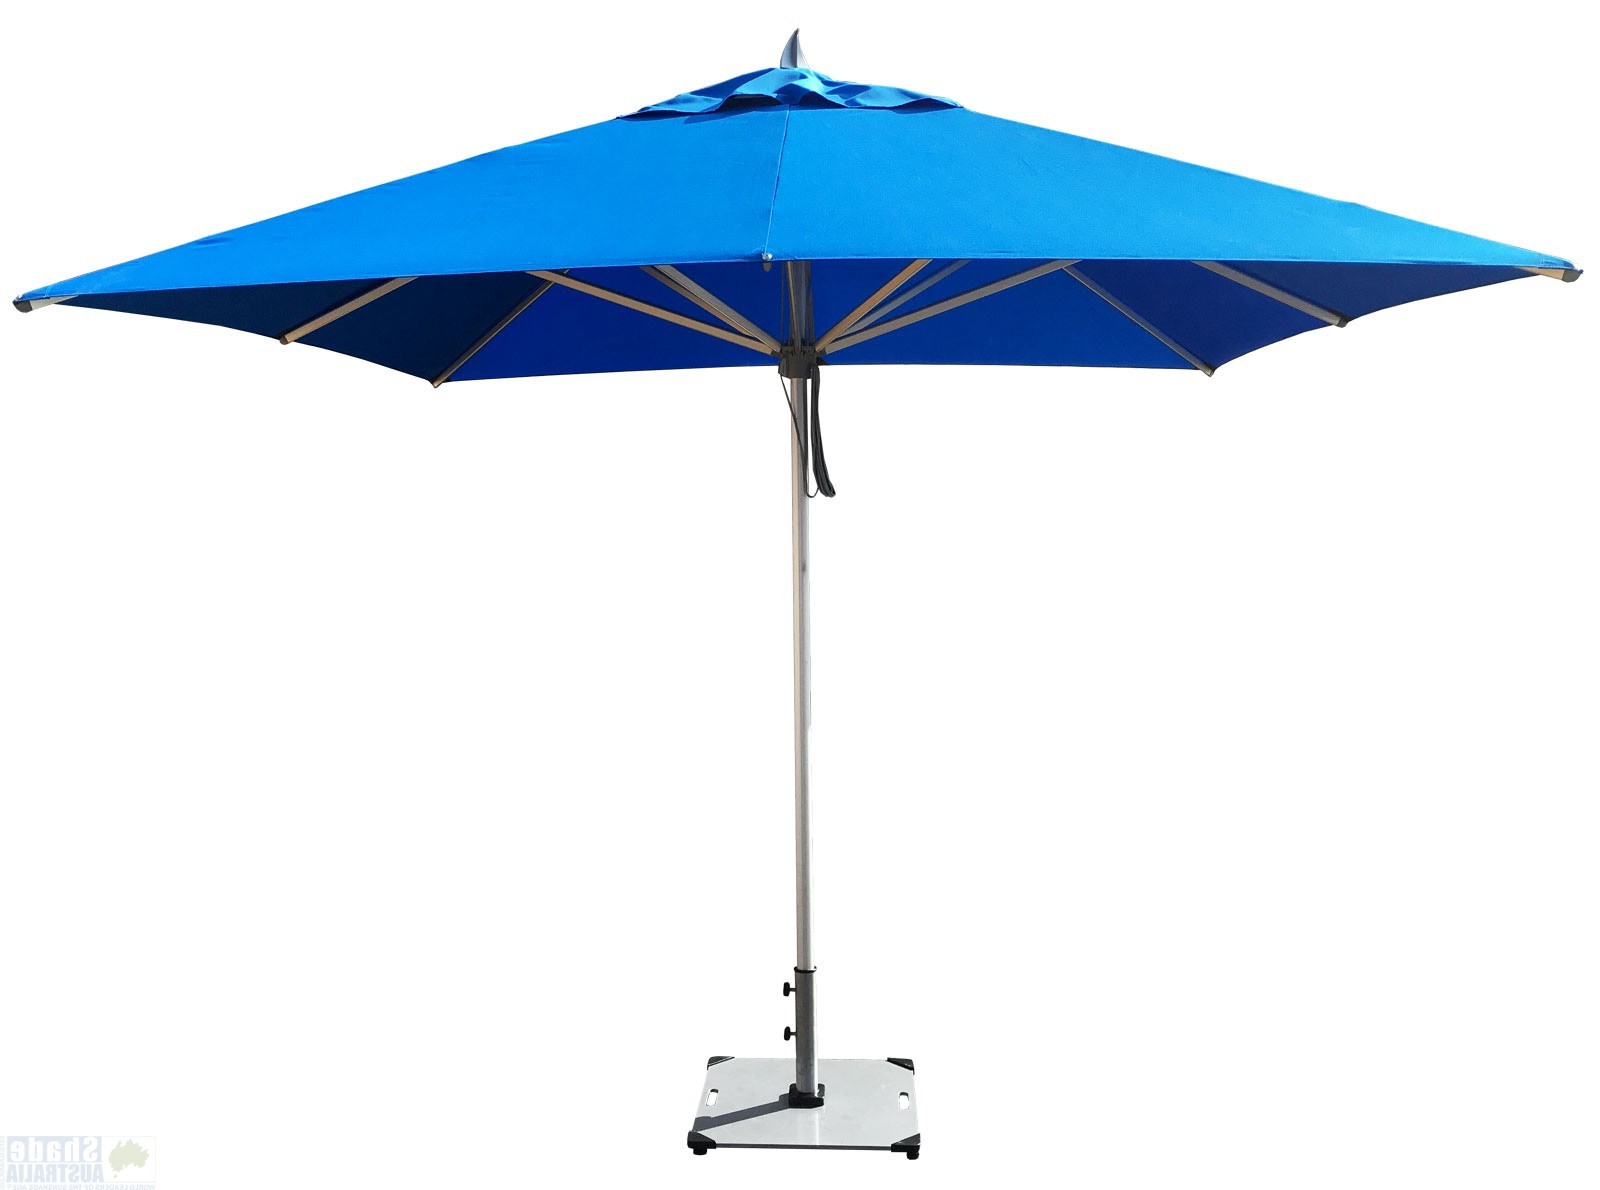 Hurricane Premium Parasol Intended For Most Up To Date Italian Market Umbrellas (View 8 of 20)